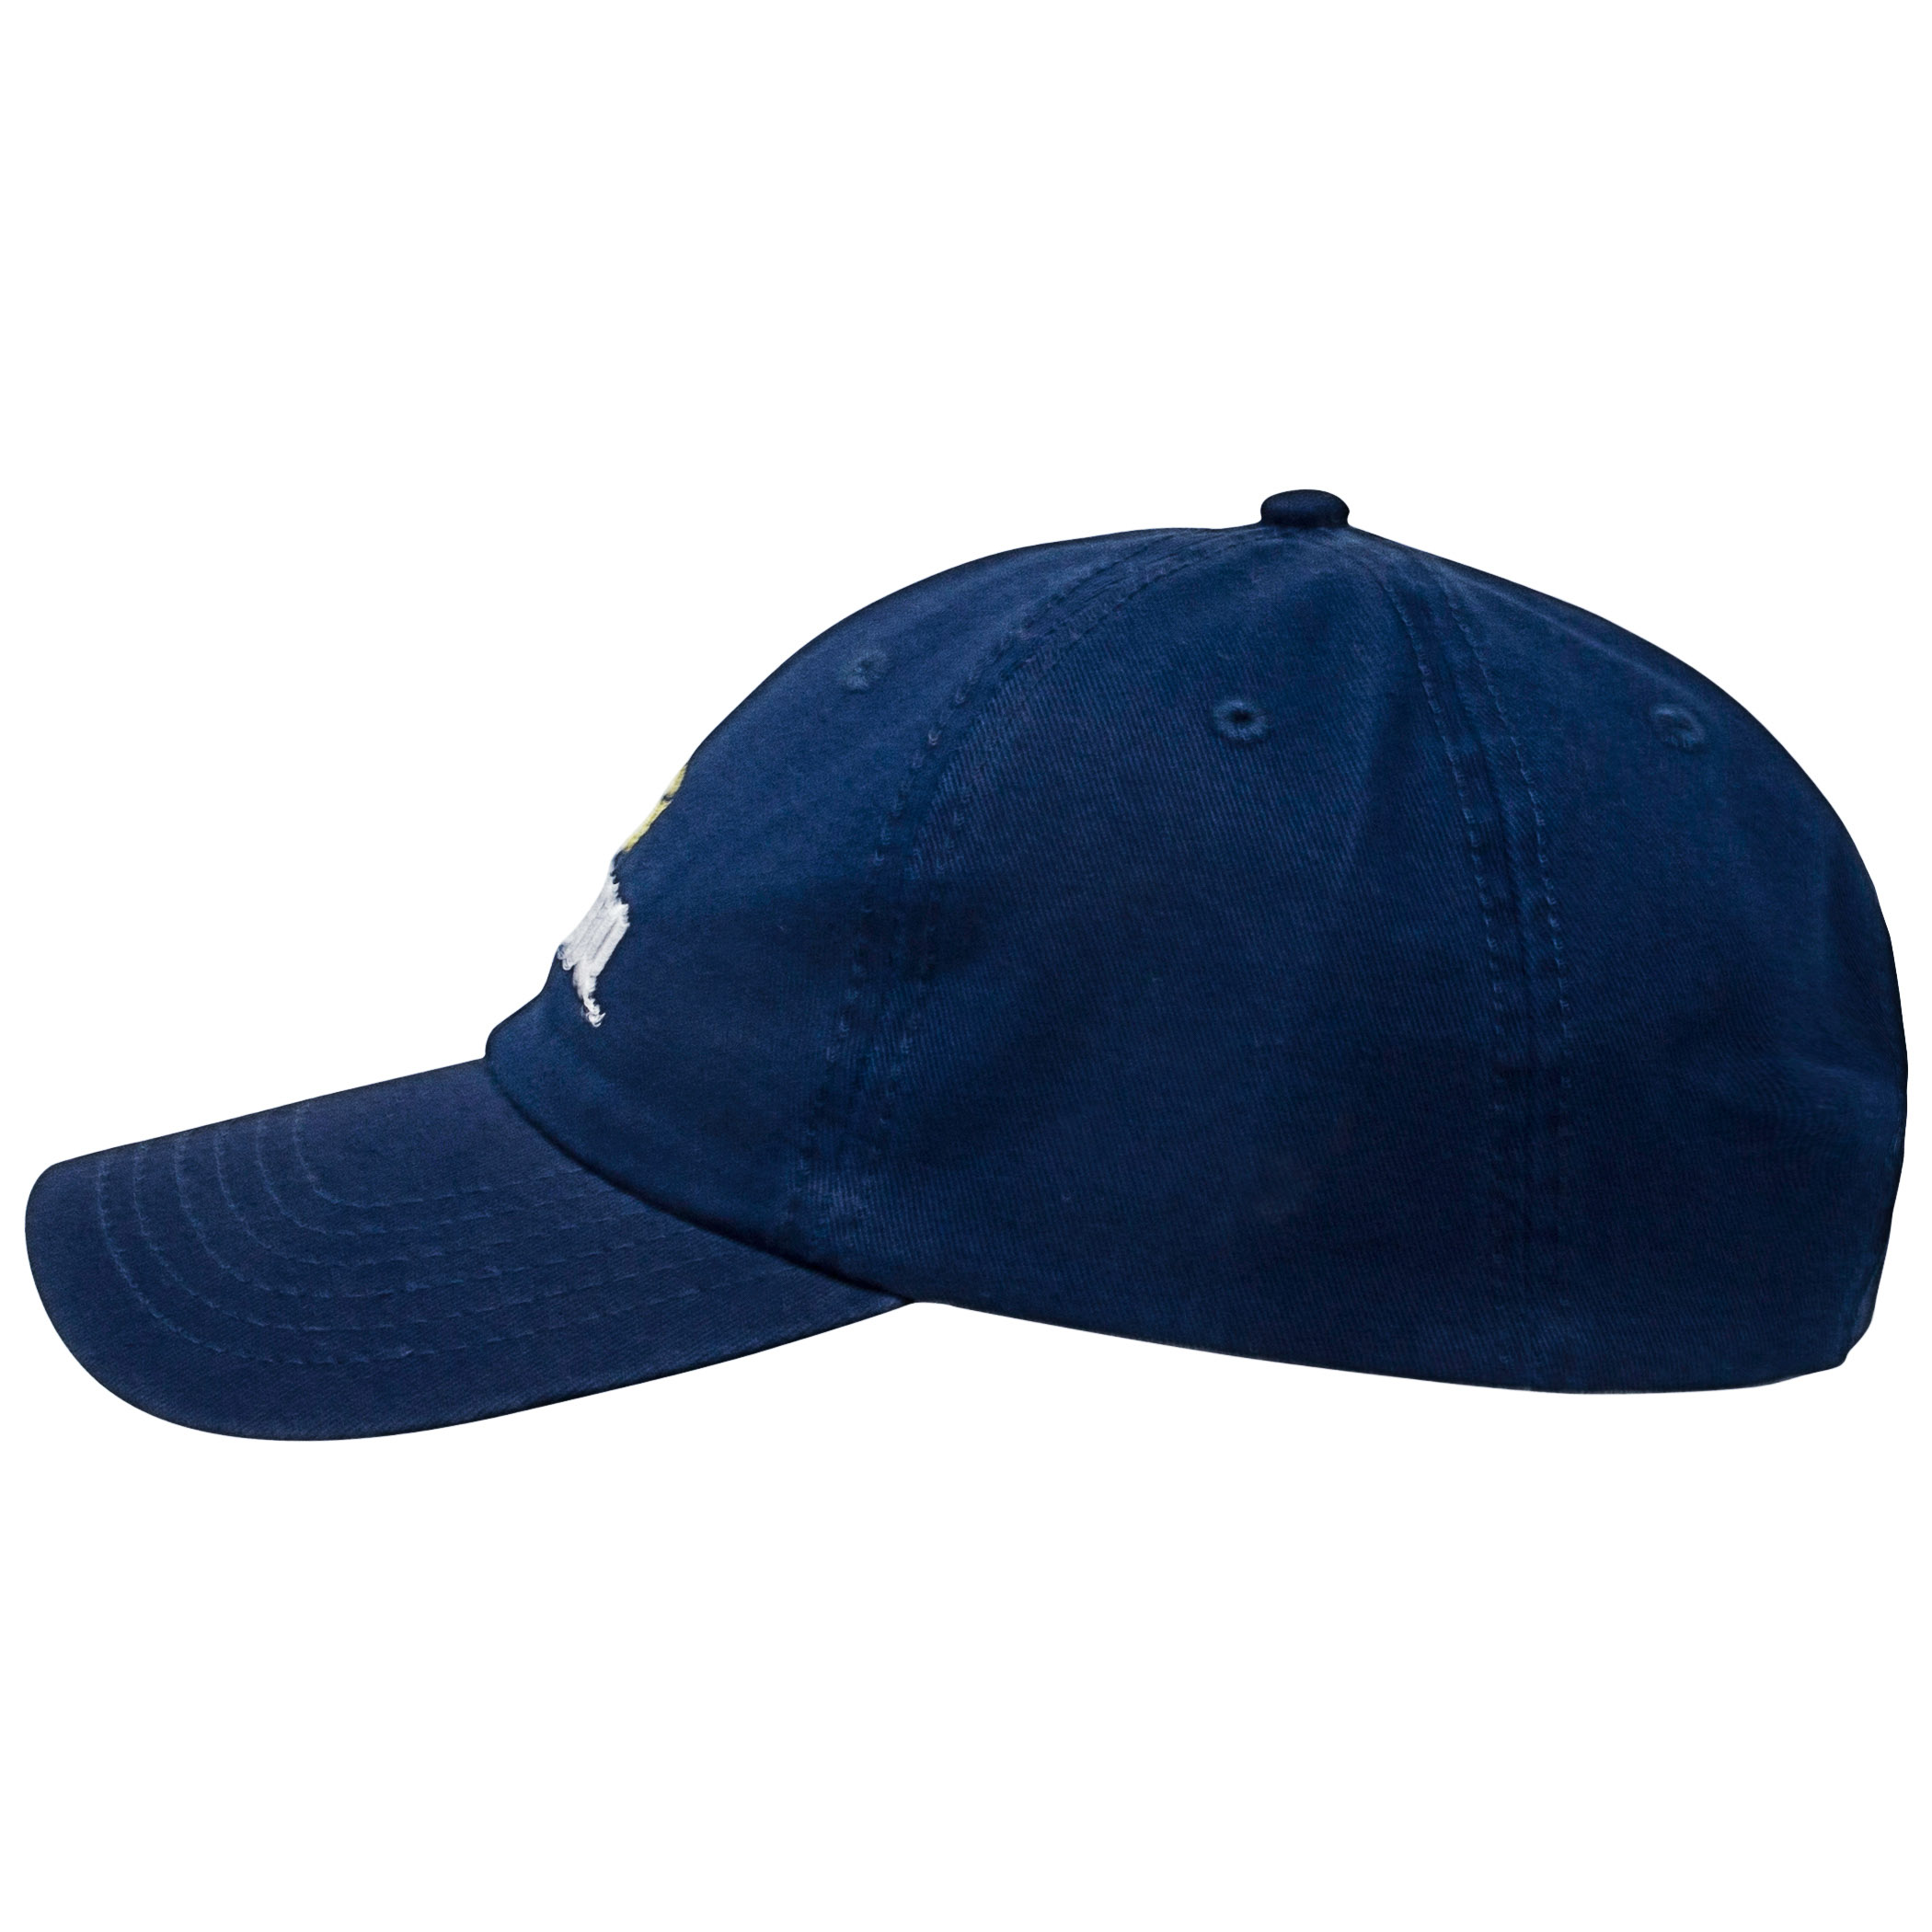 Gorra Coronita Blue Summer